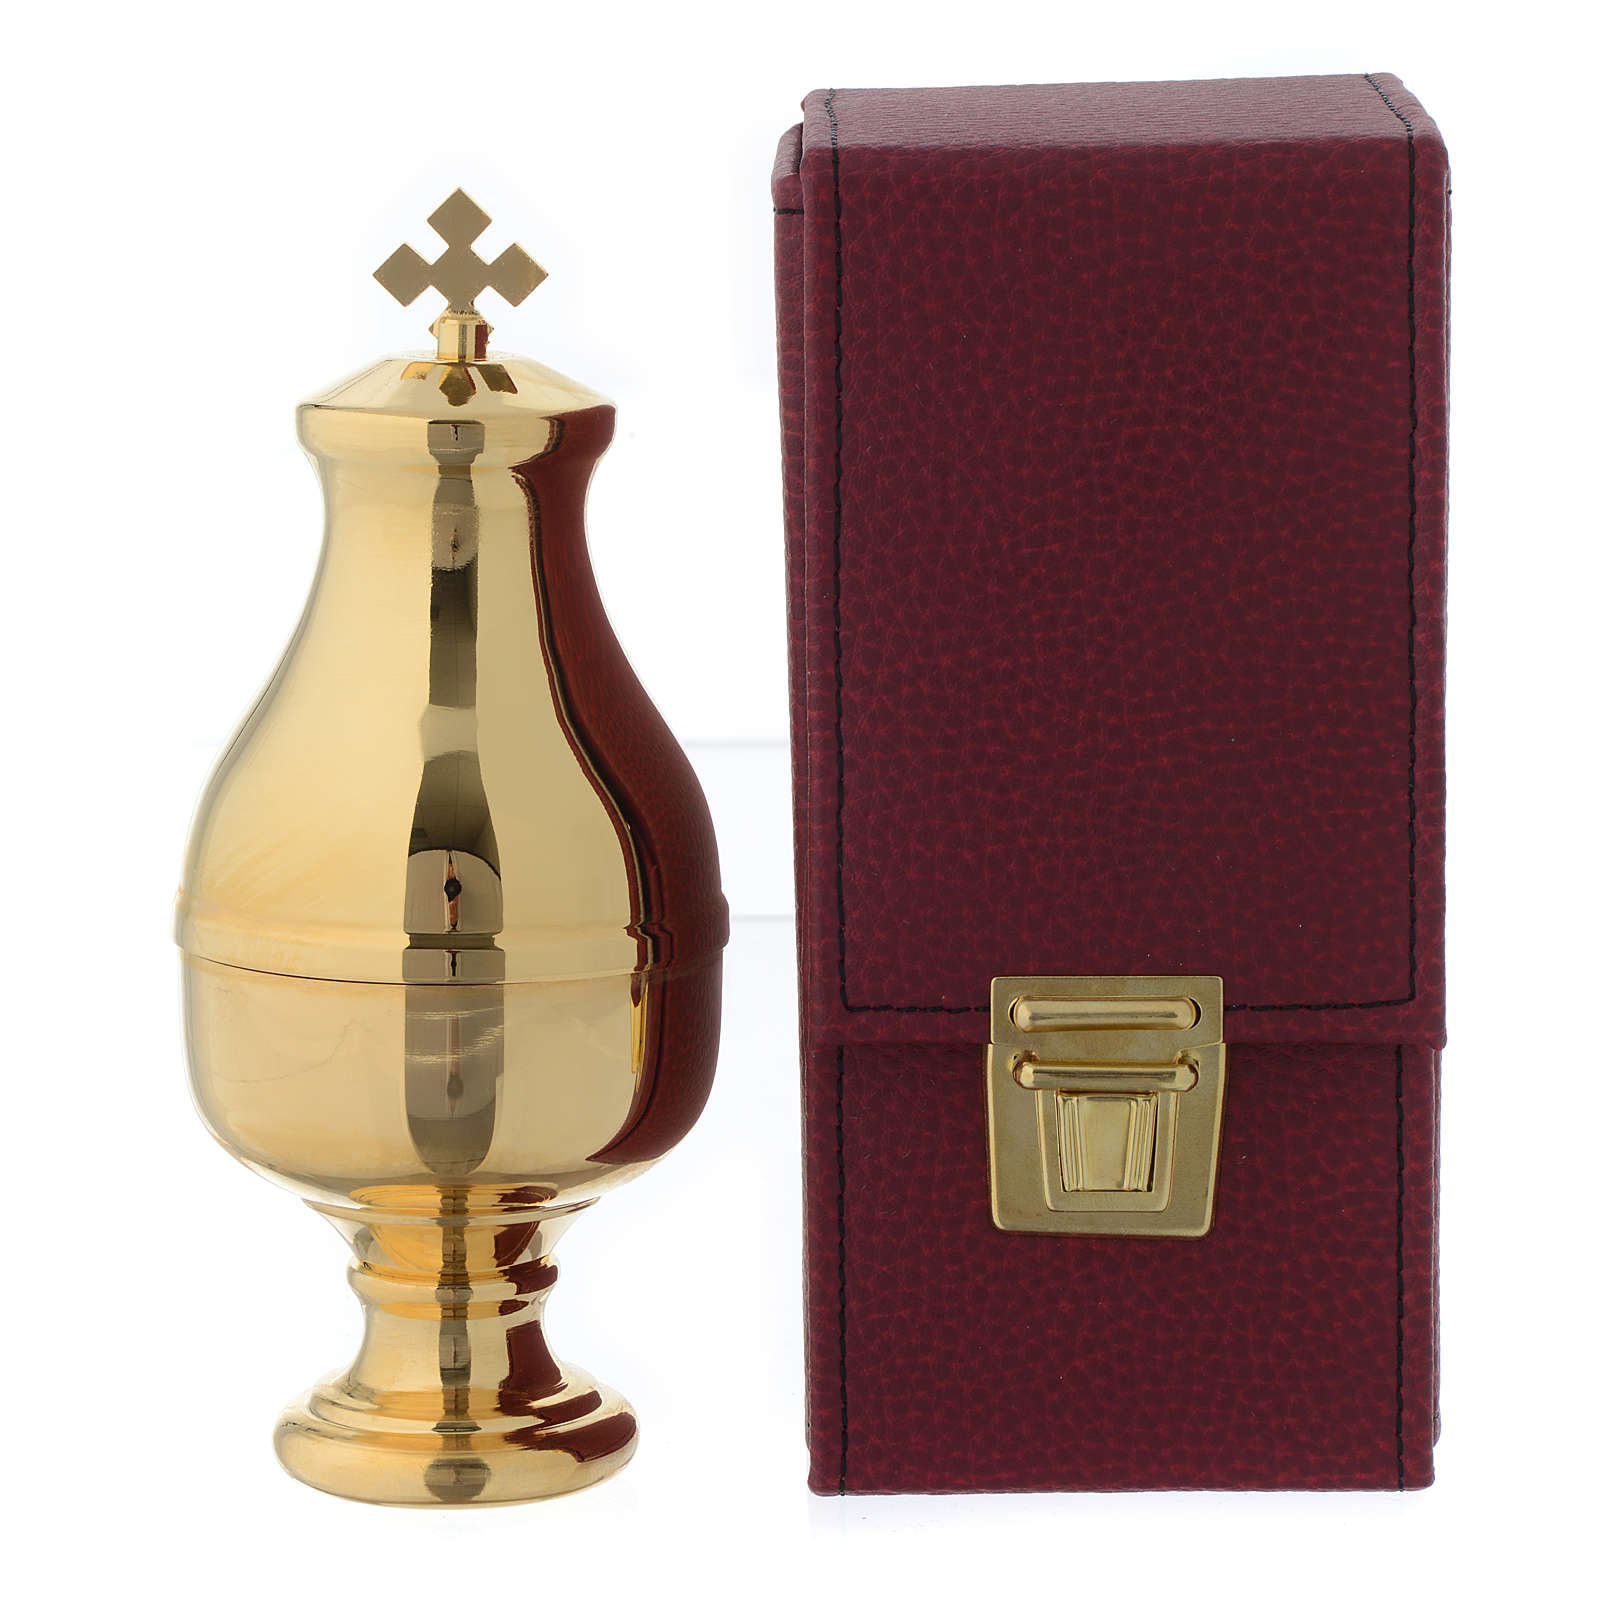 Holy oil stock with burgundy case, INF 3